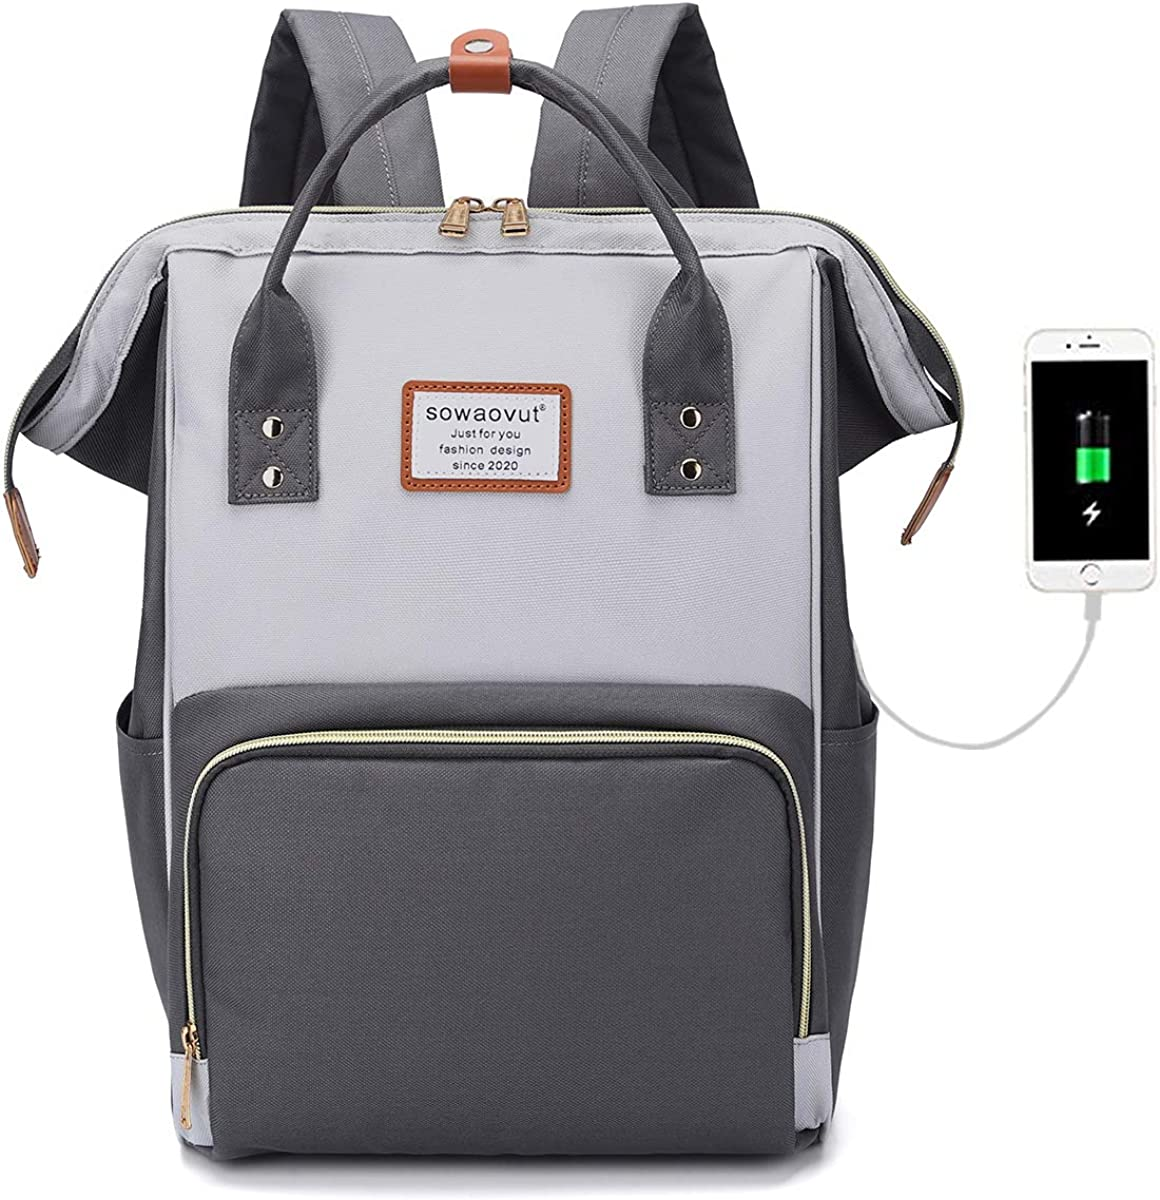 SOWAOVUT Laptop Backpack 15.6 Inch Casual Daypack Water Resistant Business Travel School Backpack for Women Men Student